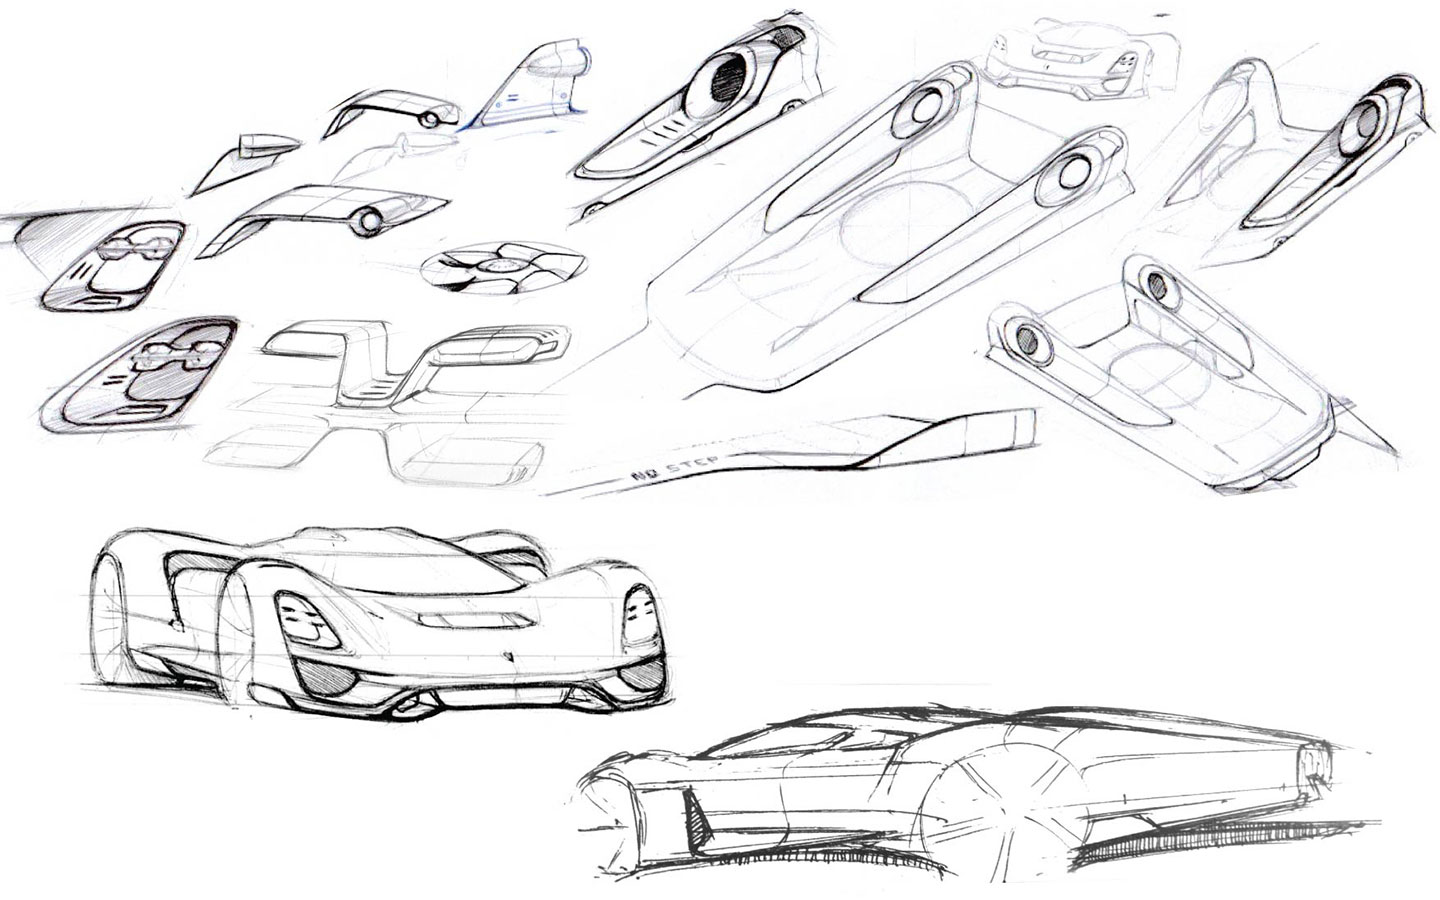 Porsche 908-04 Concept Design Sketches